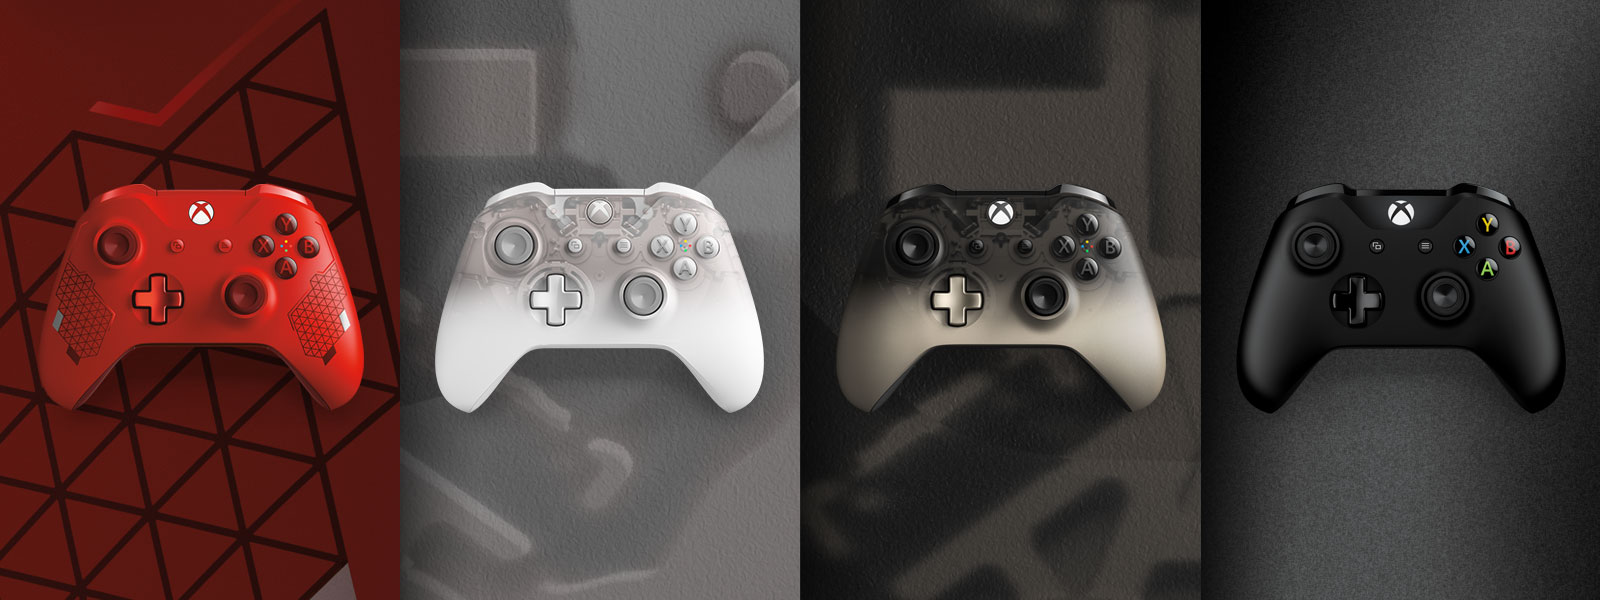 85d4d3598e2 I can't wait to see more games start adding prompts for Xbox One and PS4  buttons in games on Apple platforms. The huge barrier of entry for users  and ...